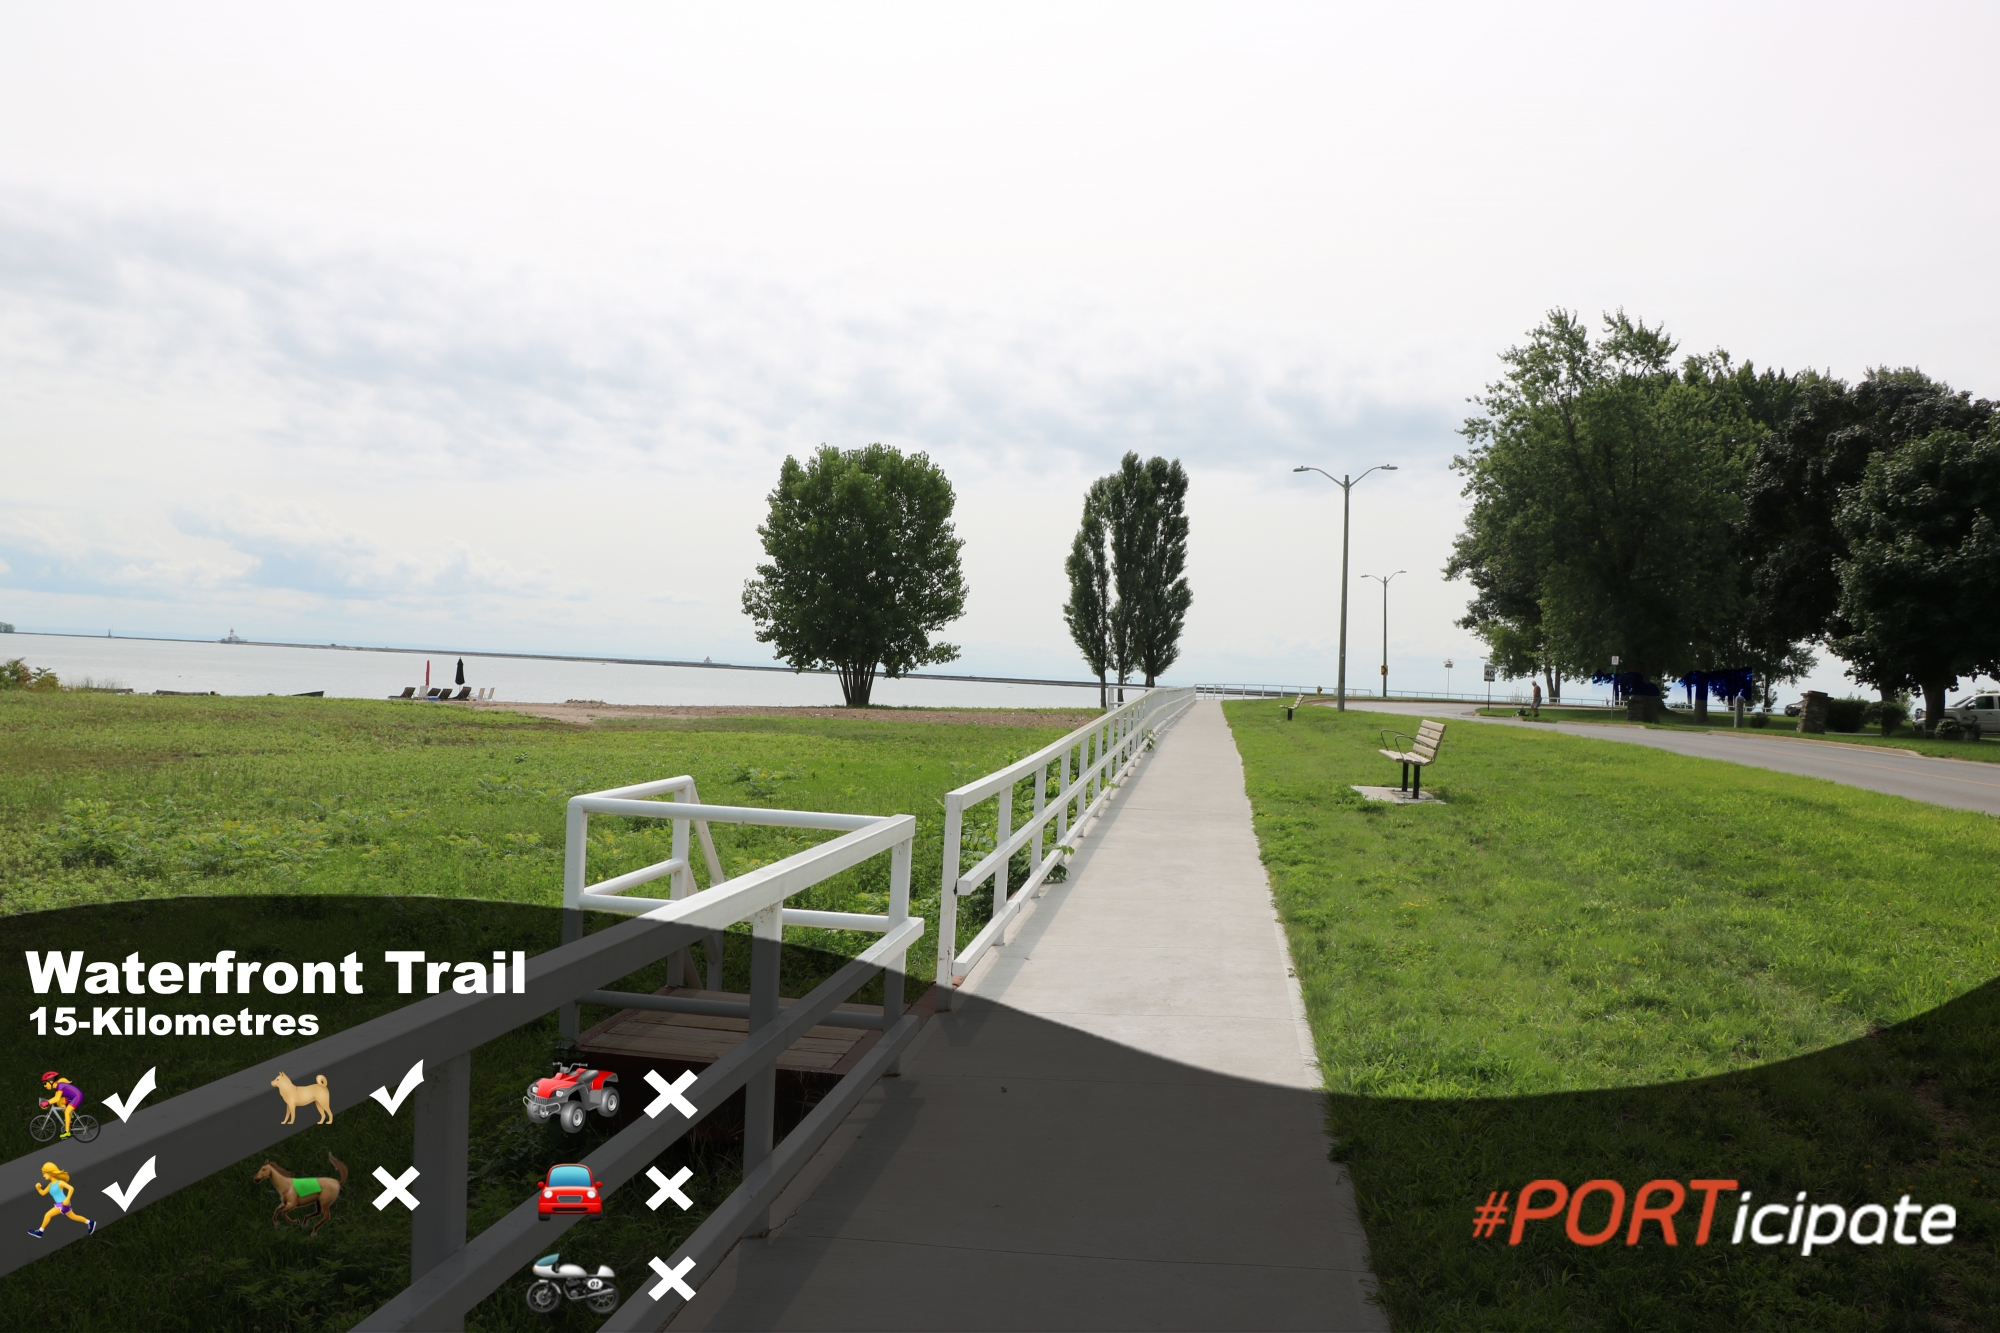 Waterfront Trail Image